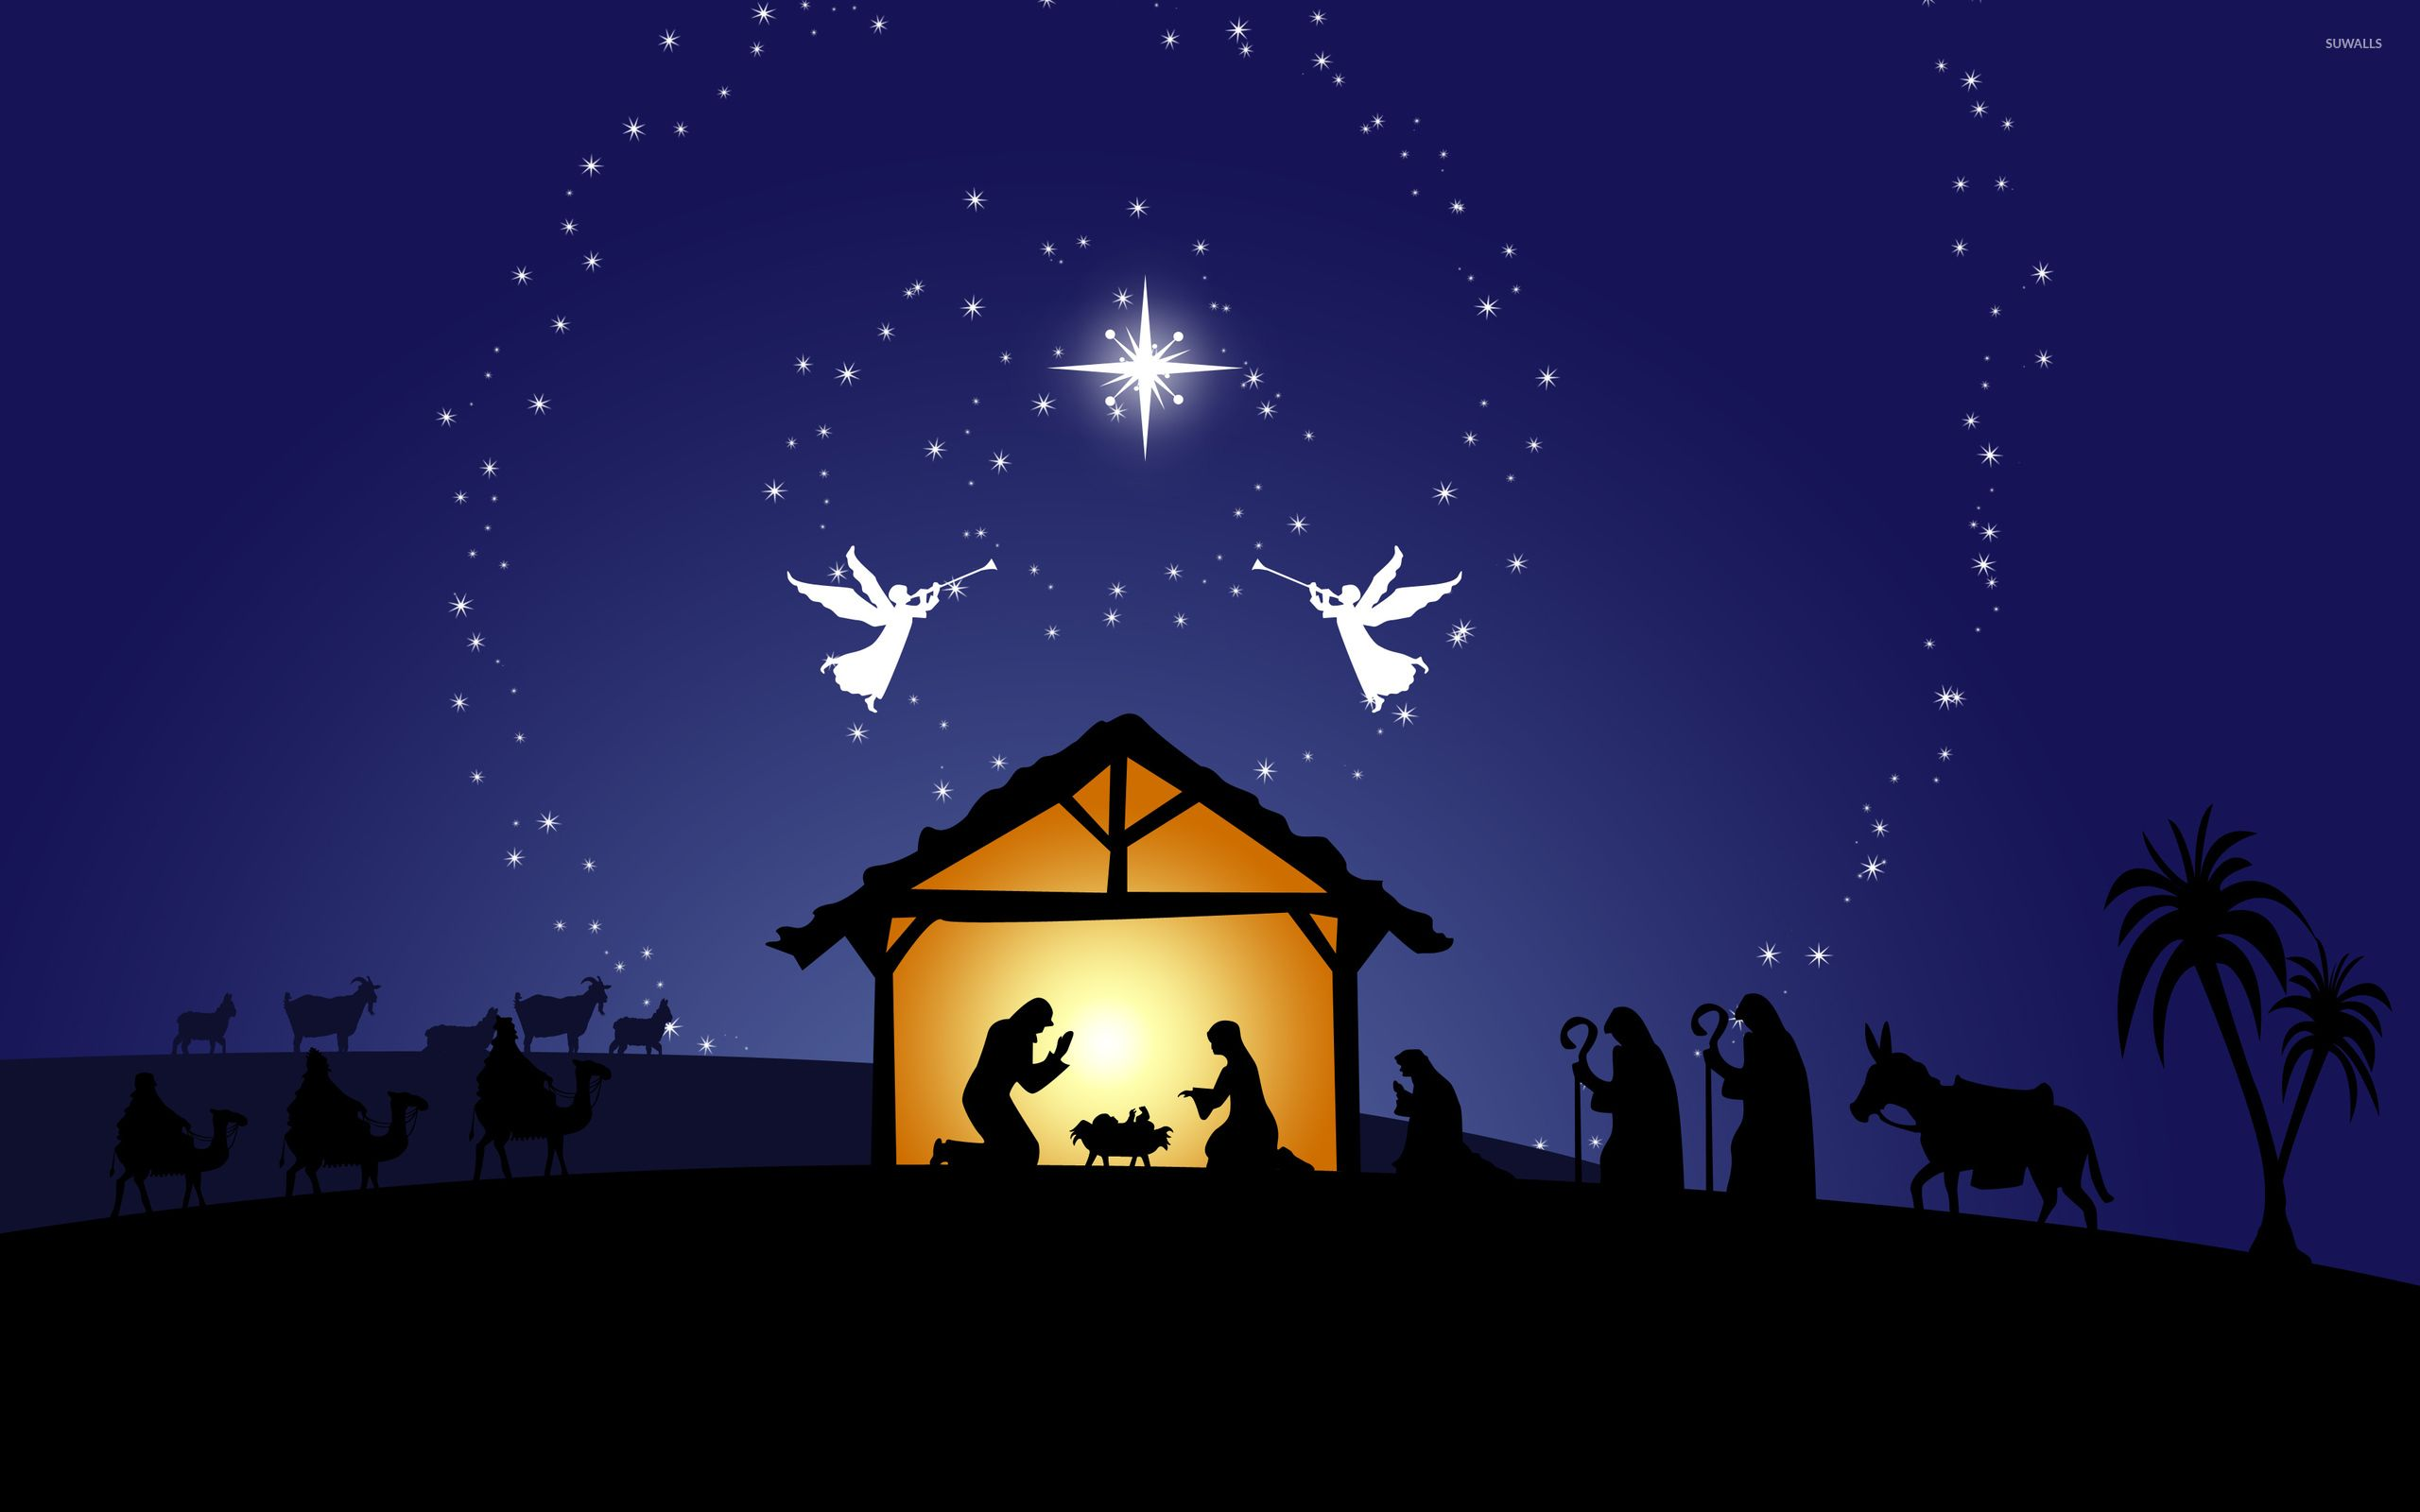 Christmas Nativity Desktop